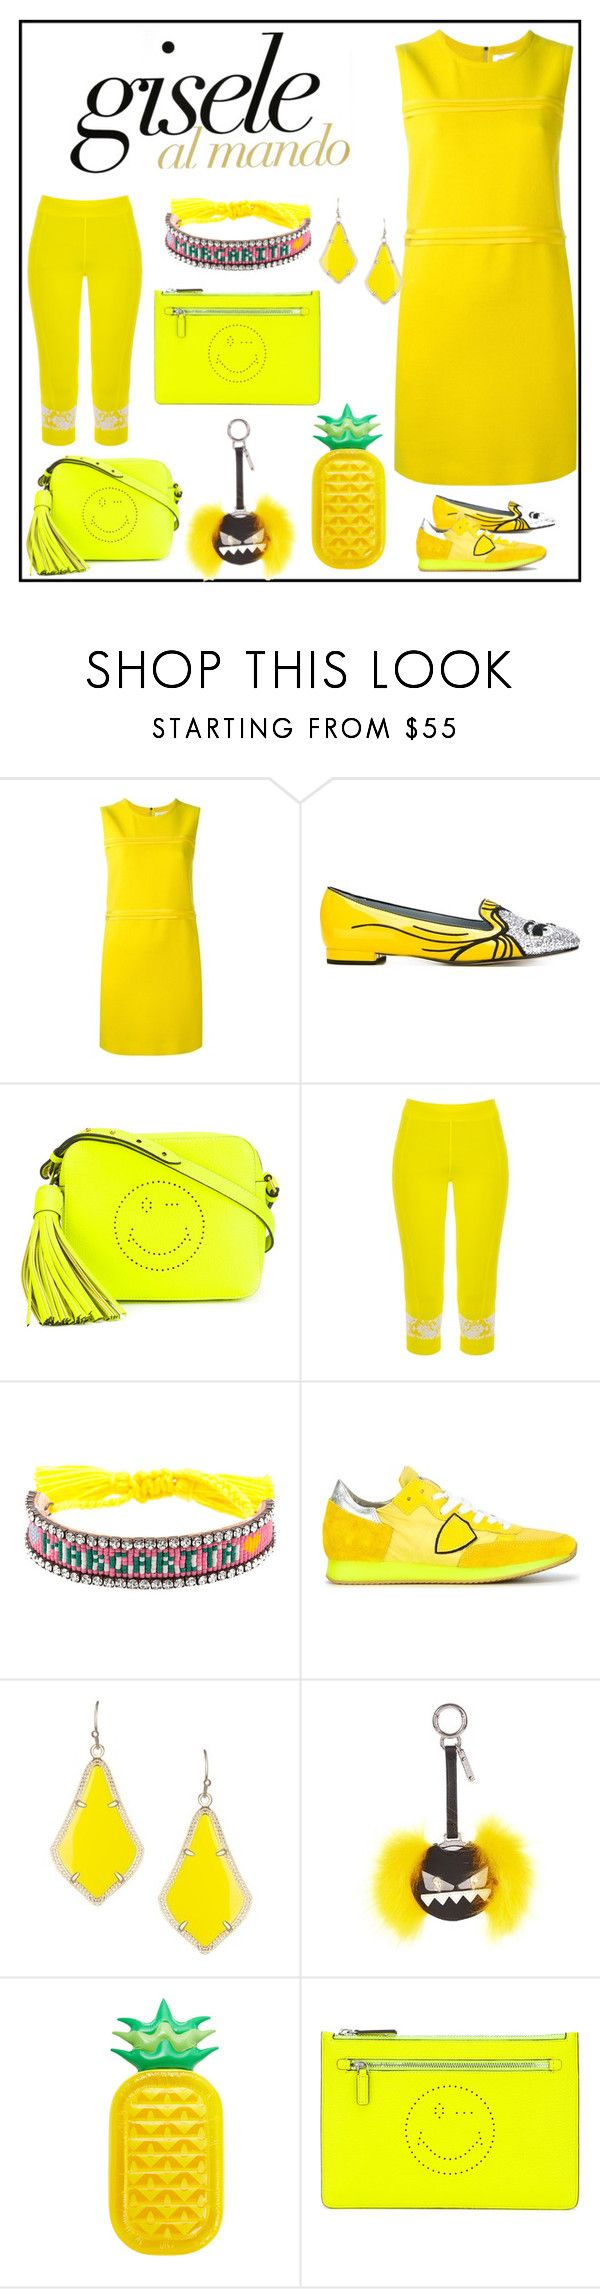 """Yellow looks"" by denisee-denisee ❤ liked on Polyvore featuring Victoria, Victoria Beckham, Chiara Ferragni, Anya Hindmarch, adidas, Shourouk, Philippe Model, Kendra Scott, Fendi, Sunnylife and vintage"